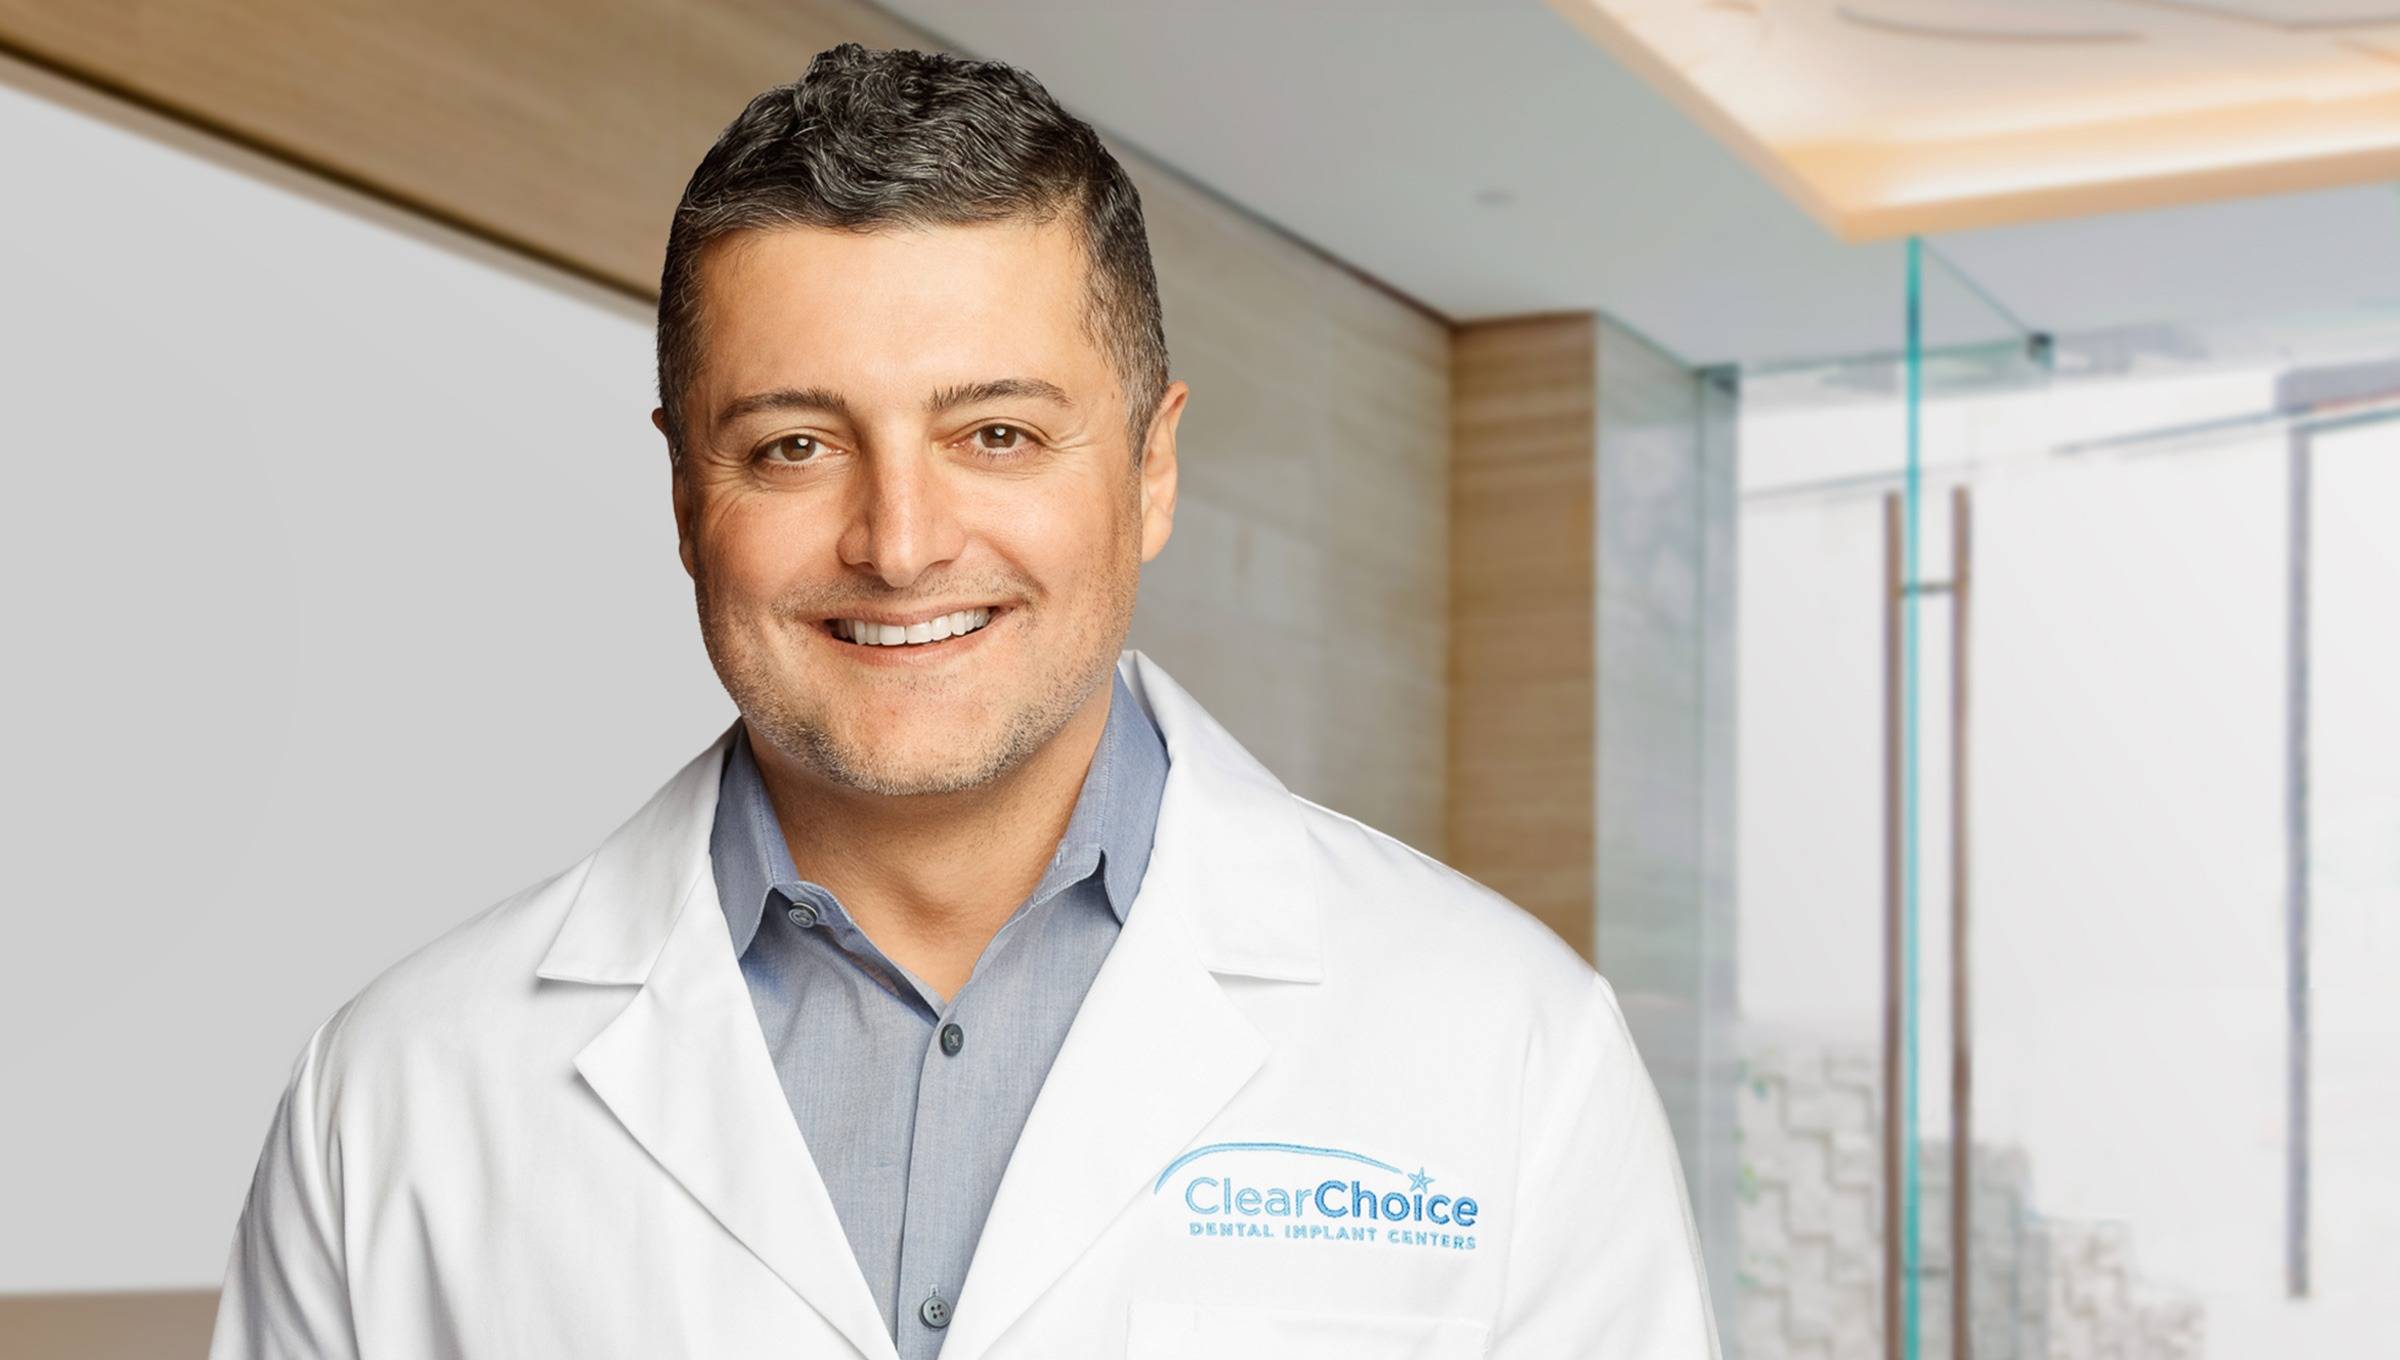 Dr.-Andrew-Afshar_ClearChoice Cleveland